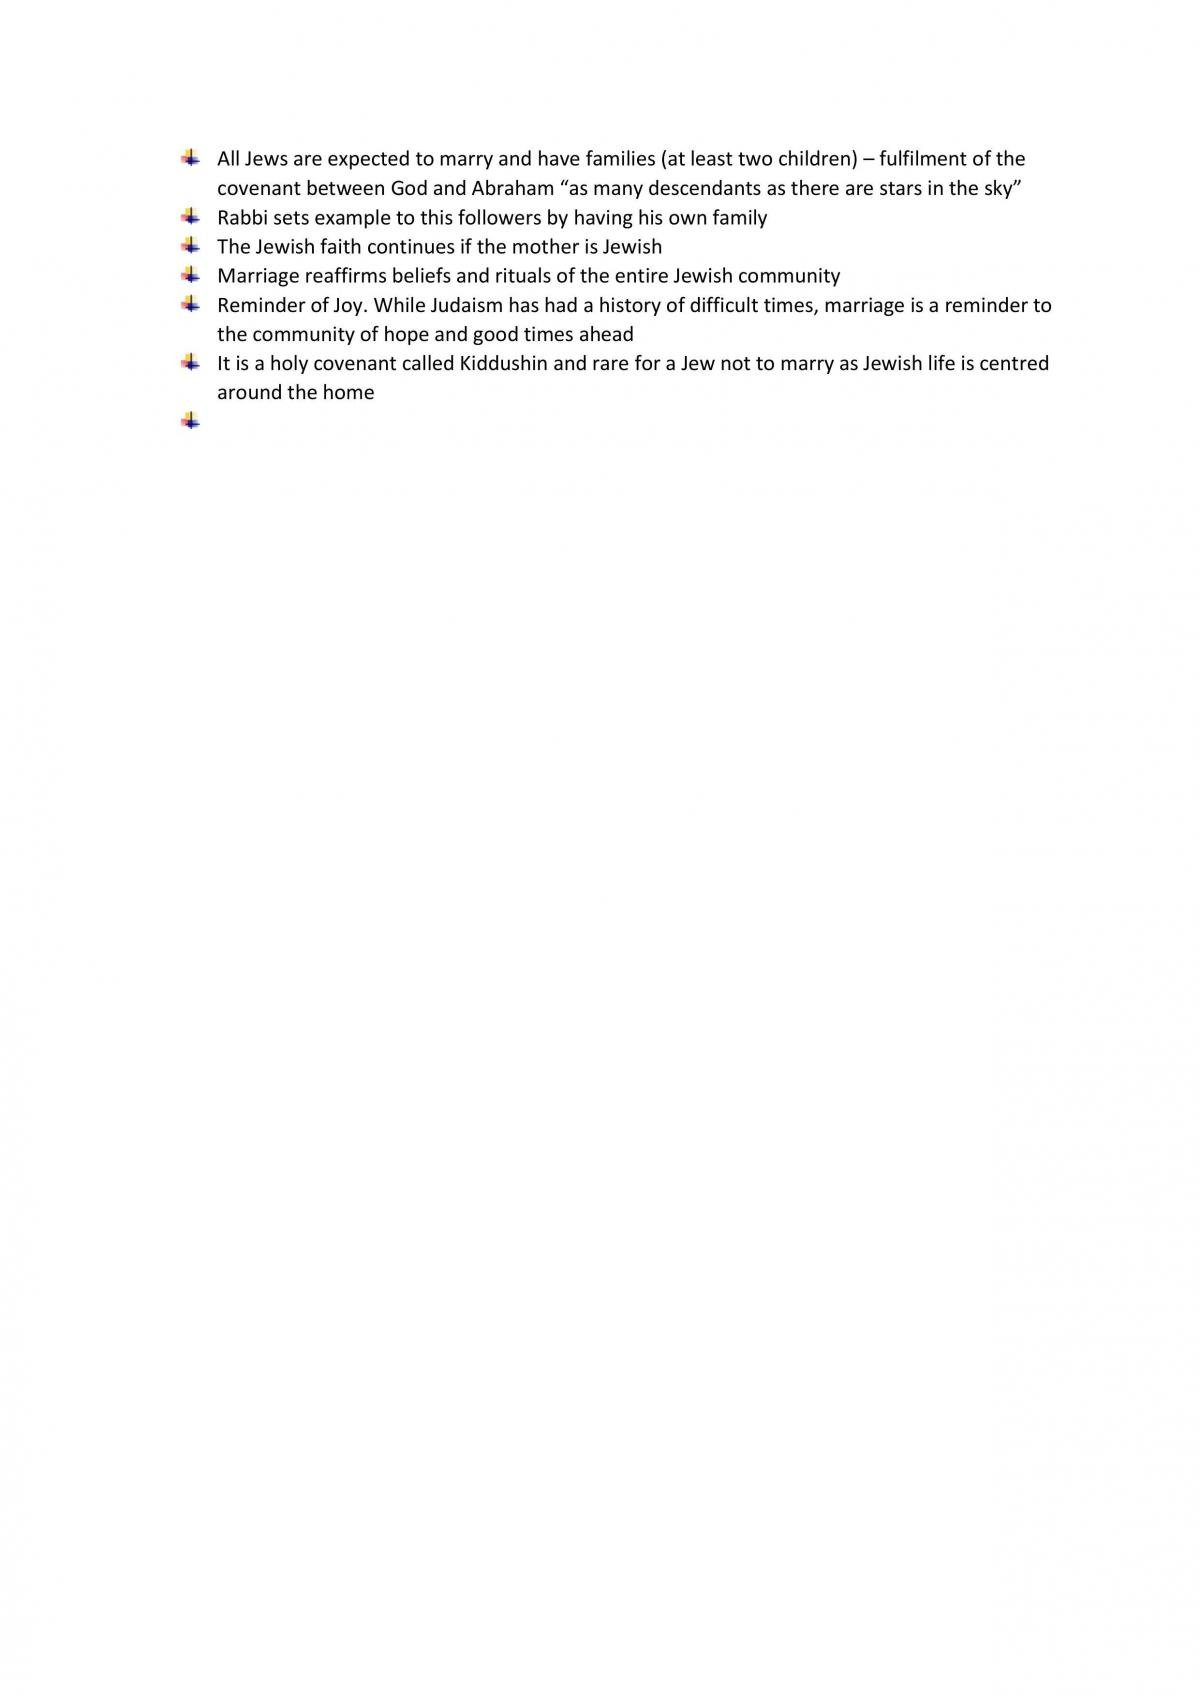 Full Study Notes on Judaism - Page 16